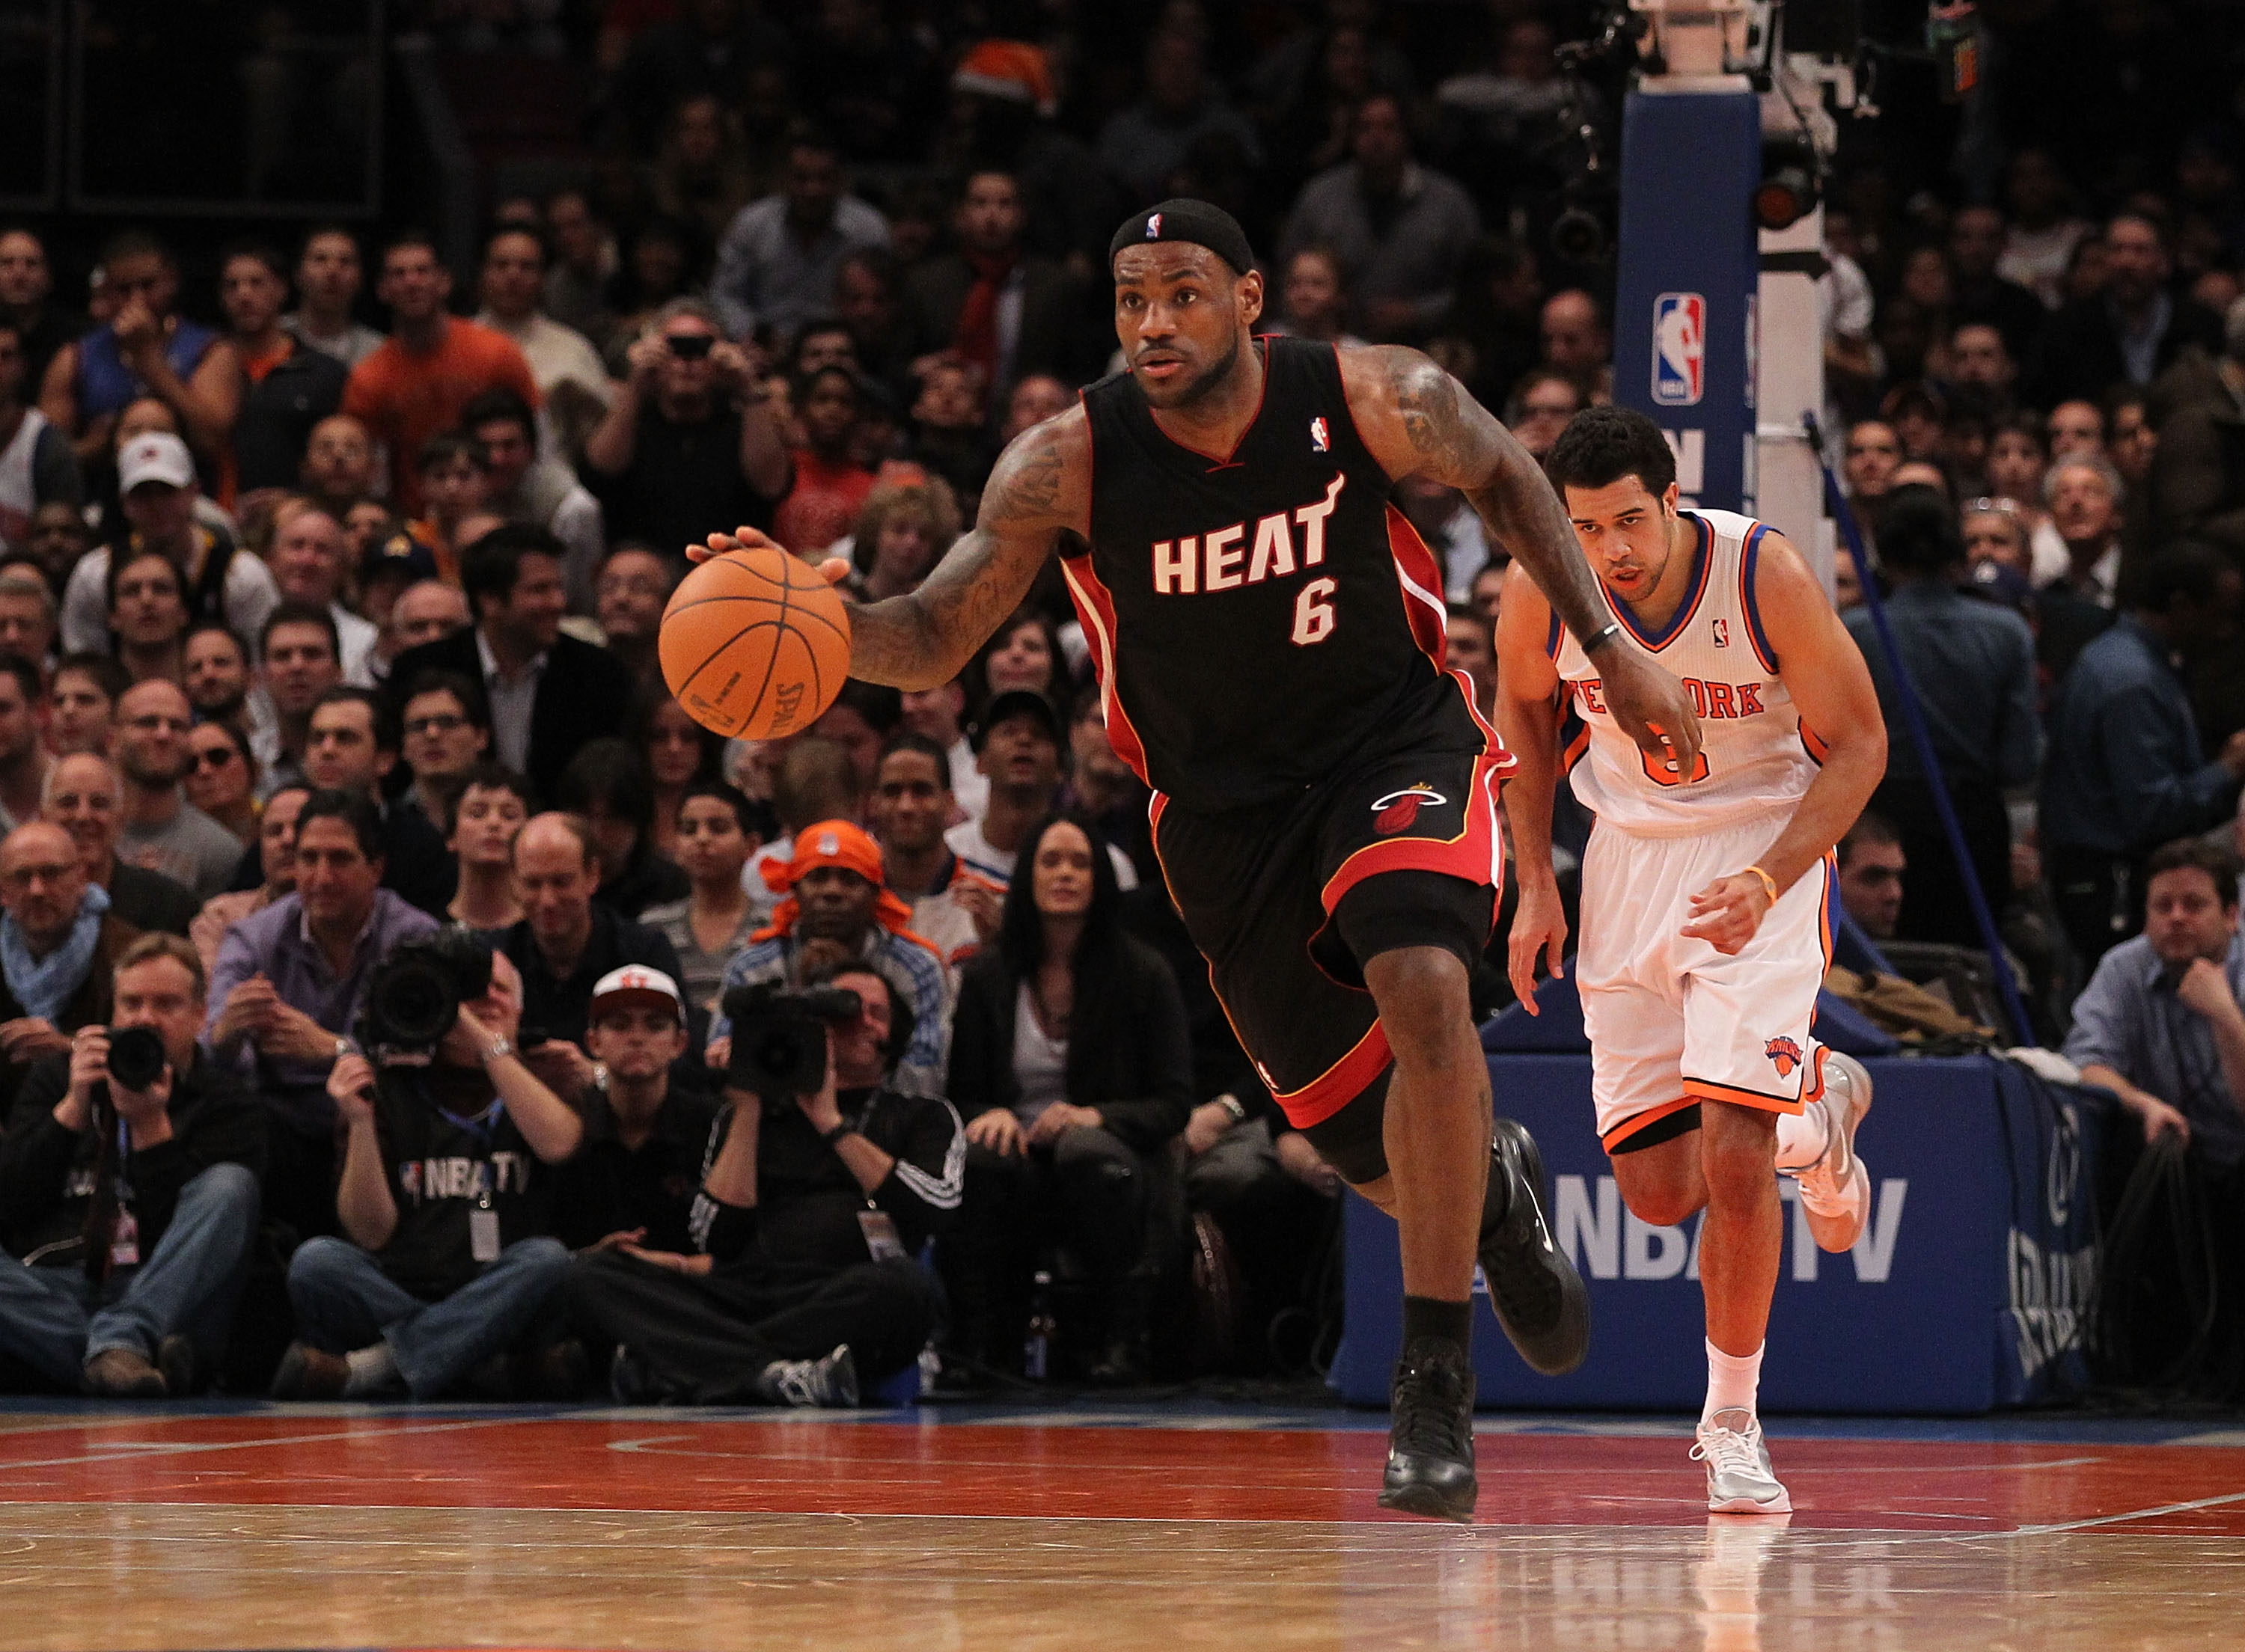 NEW YORK - DECEMBER 17:  LeBron James #6 of the Miami Heat dribbles the ball as Landry Fields #6 of the New York Knicks  gives chase at Madison Square Garden on December 17, 2010 in New York City. NOTE TO USER: User expressly acknowledges and agrees that,